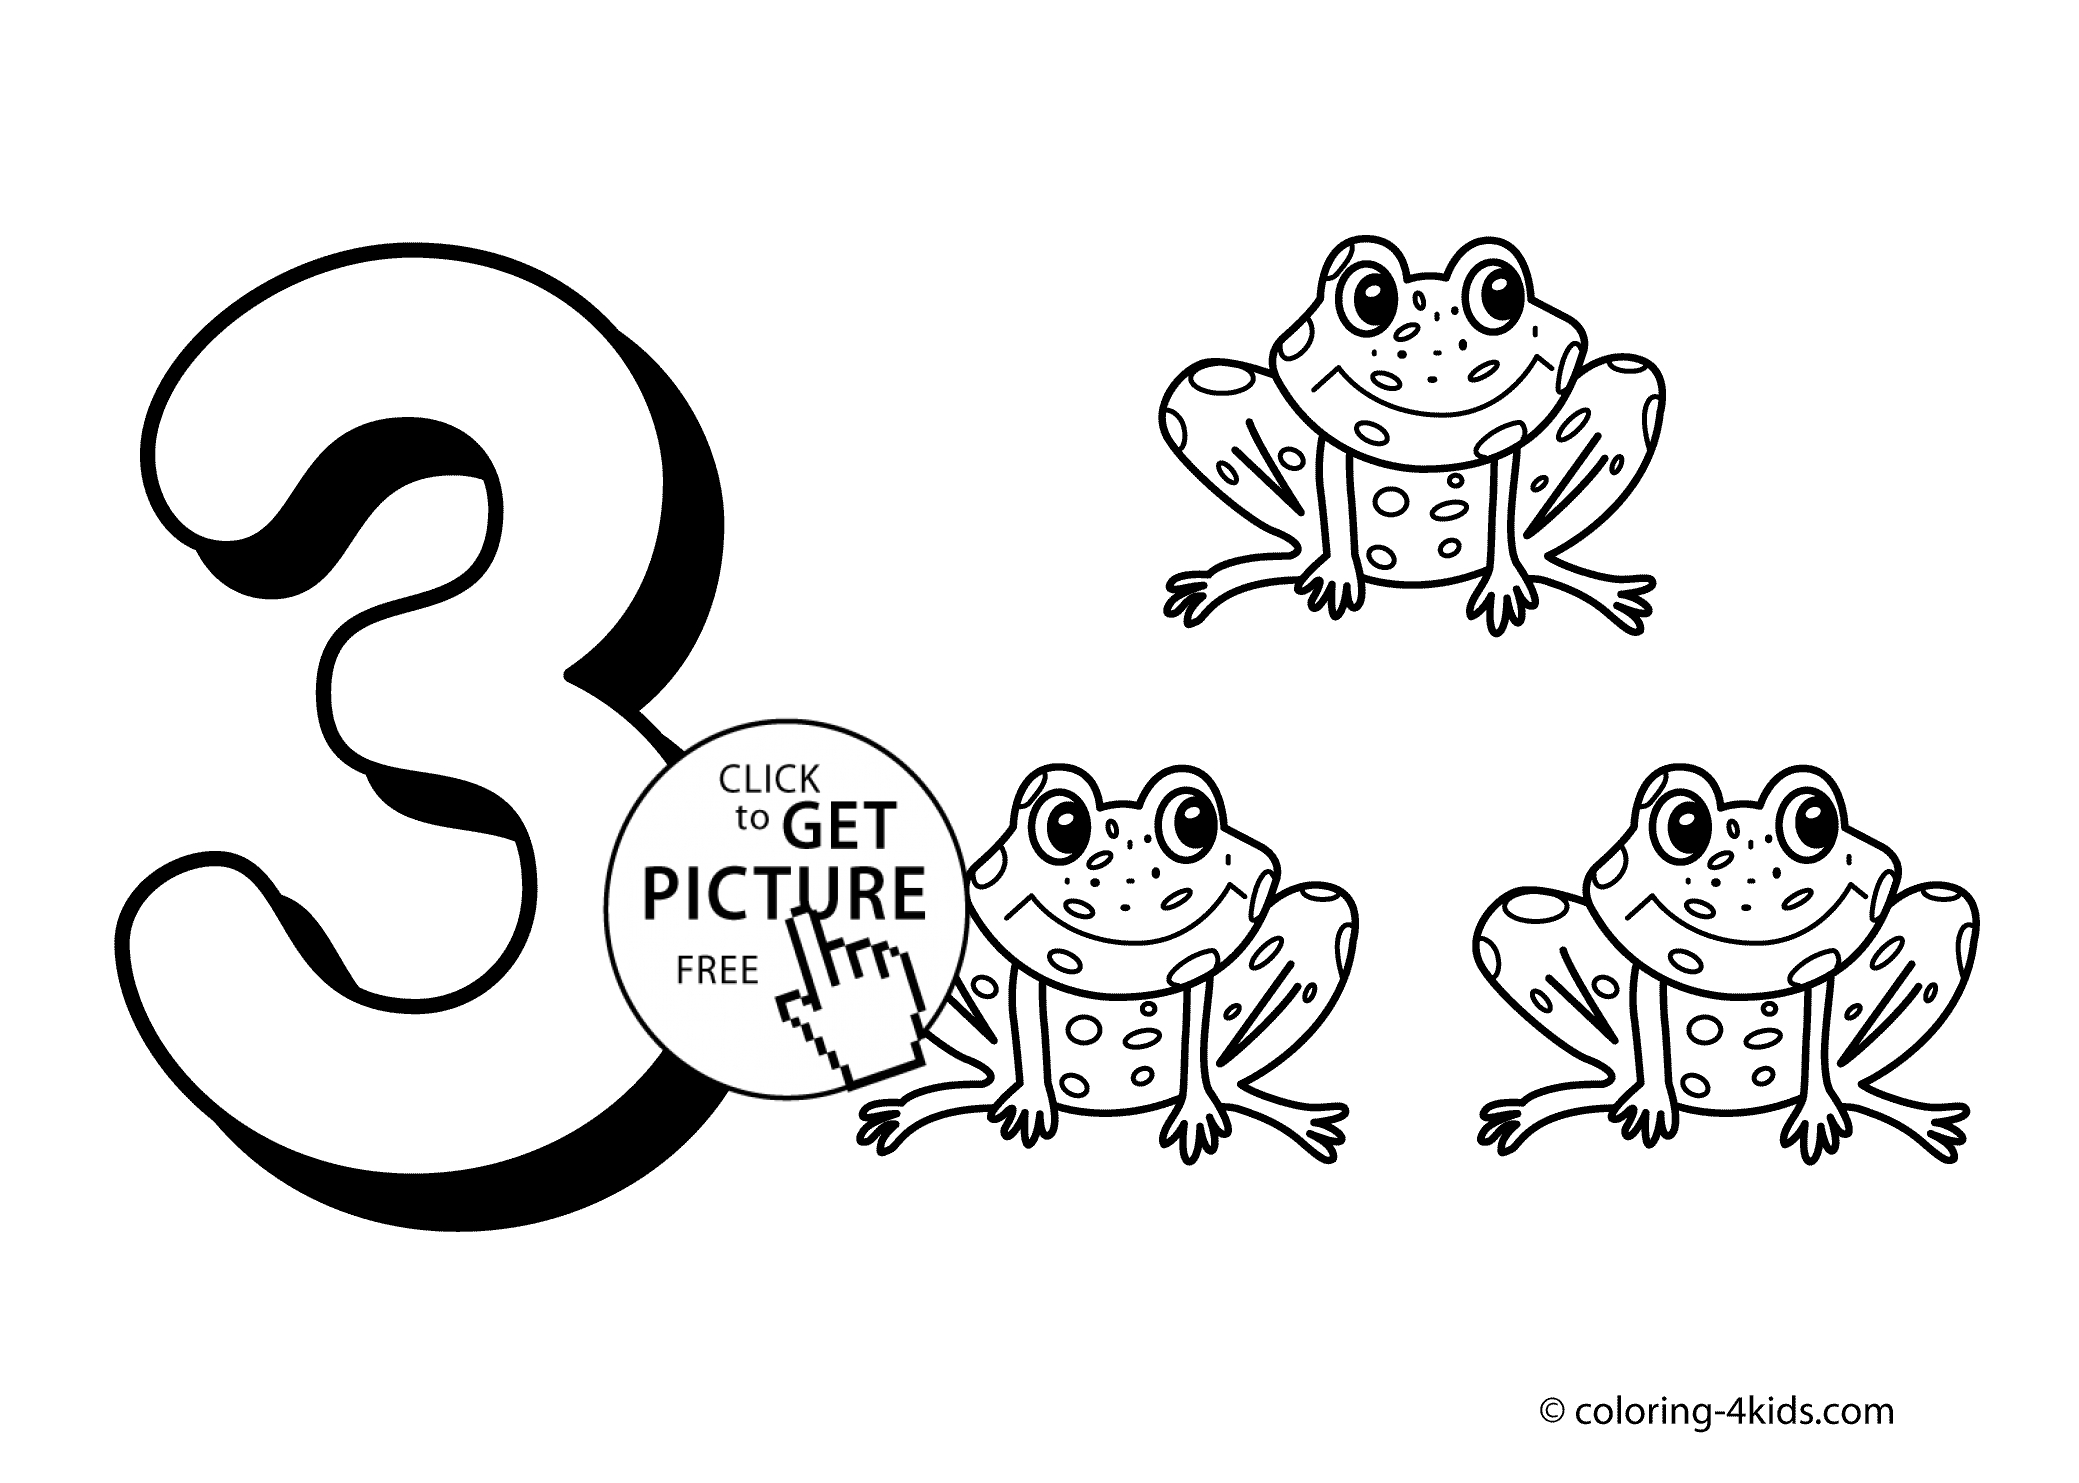 Number 3 Coloring Page - 3 Numbers Coloring Pages for Kids Printable Free Digits